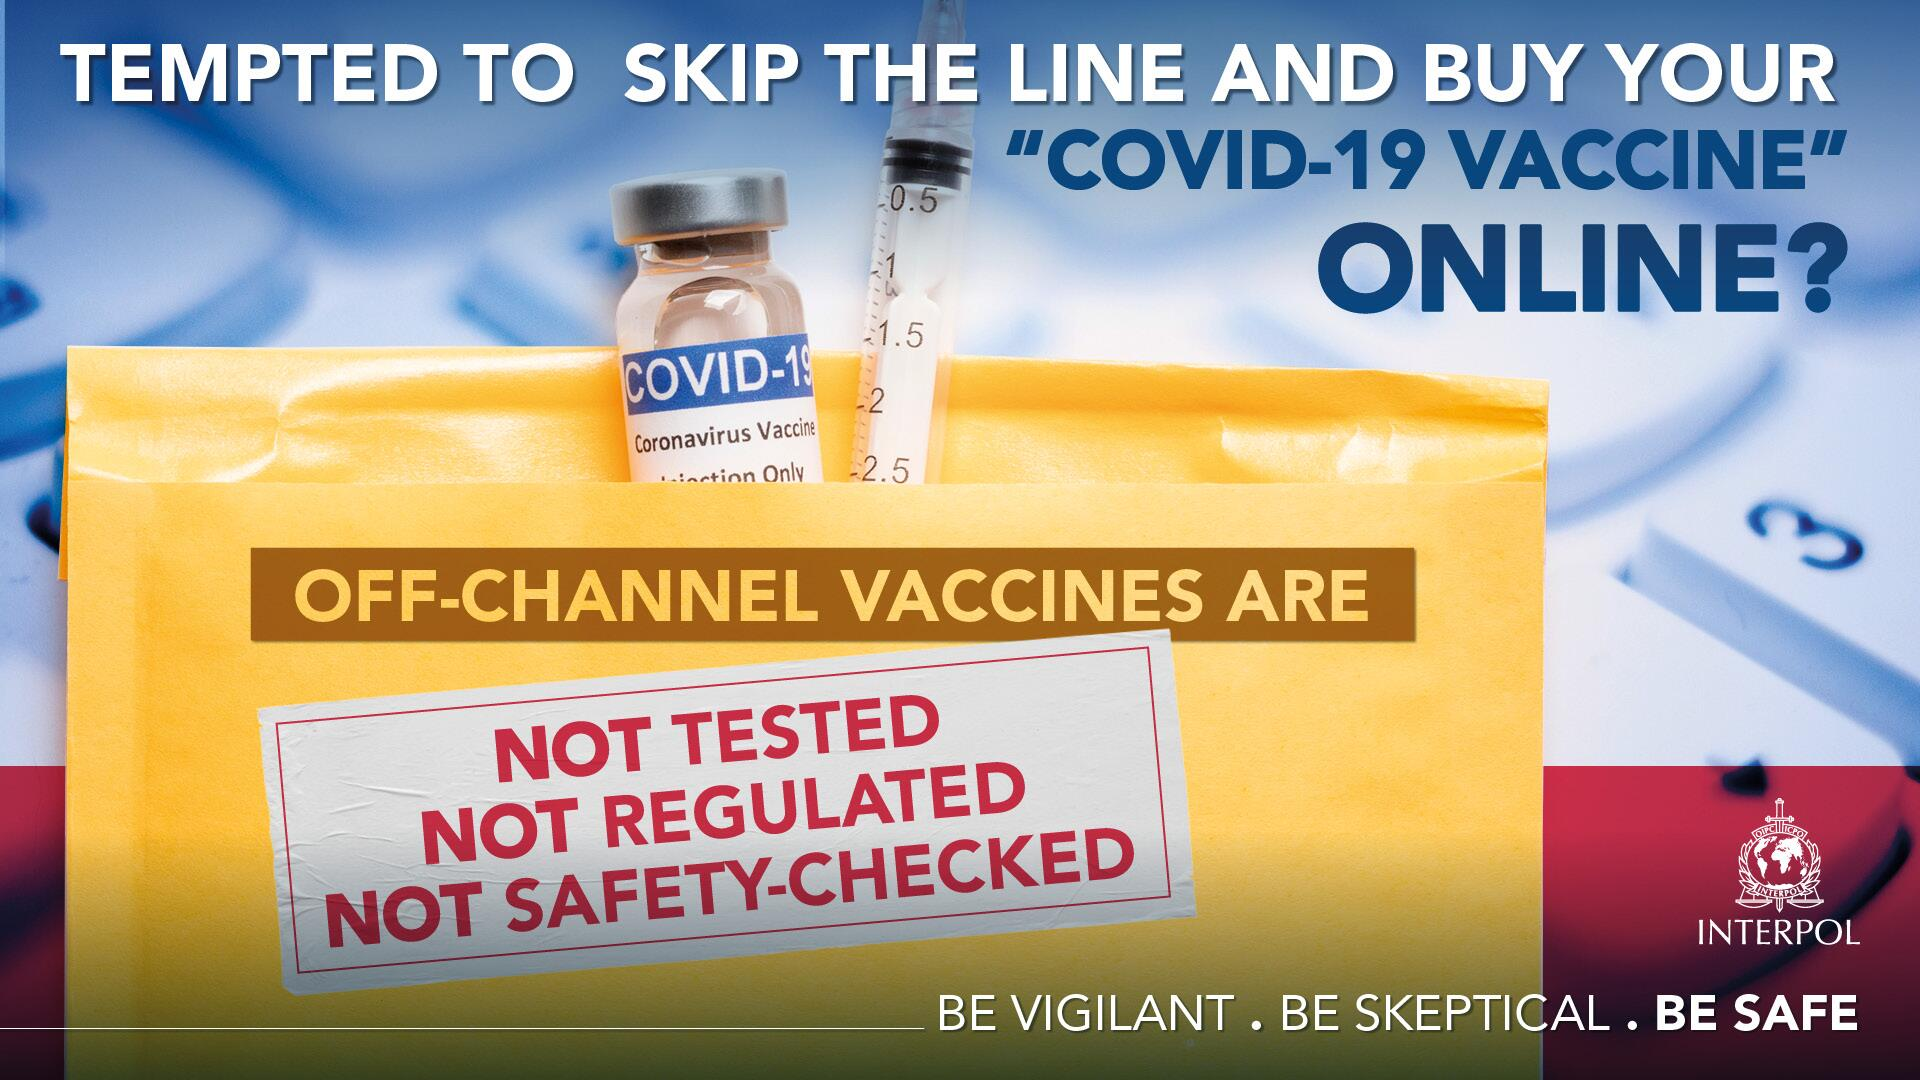 "Tempted to skip the line and buy your ""COVID-19 Vaccine"" online? Off-Channel Vaccines are: not tested; not regulated; not safety-checked."